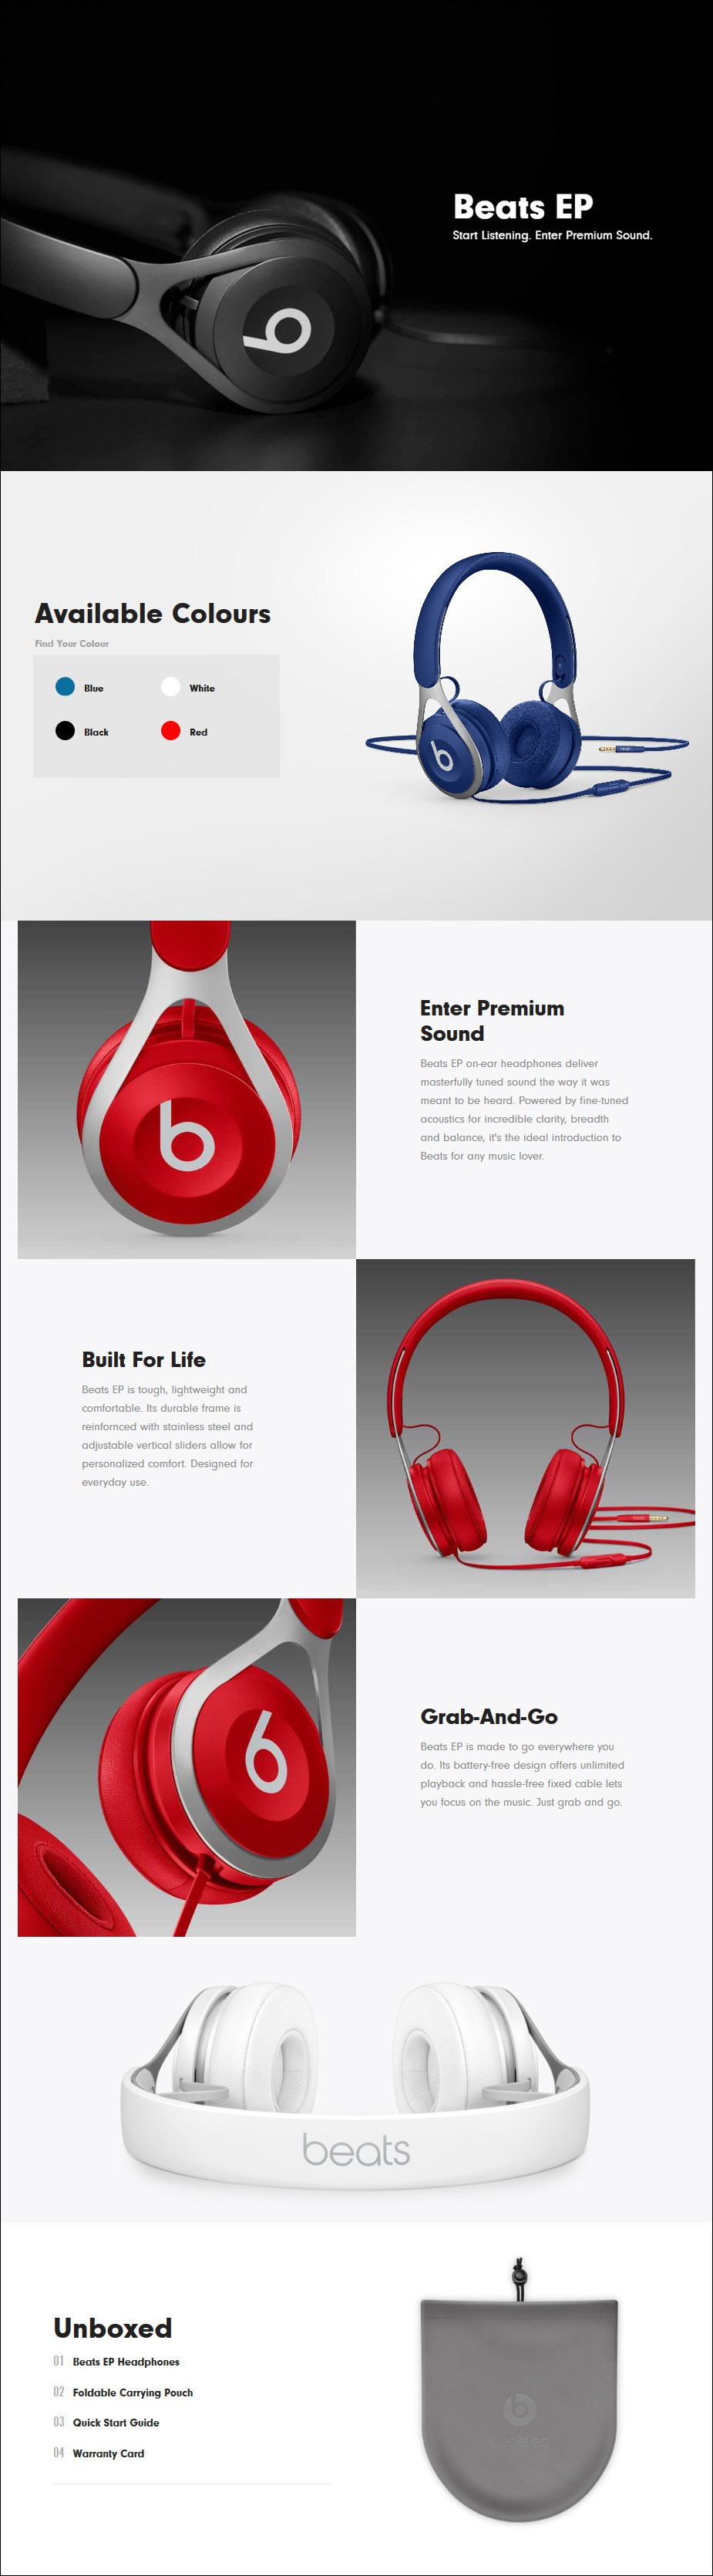 Beats EP On-Ear Headphones - Overview 1